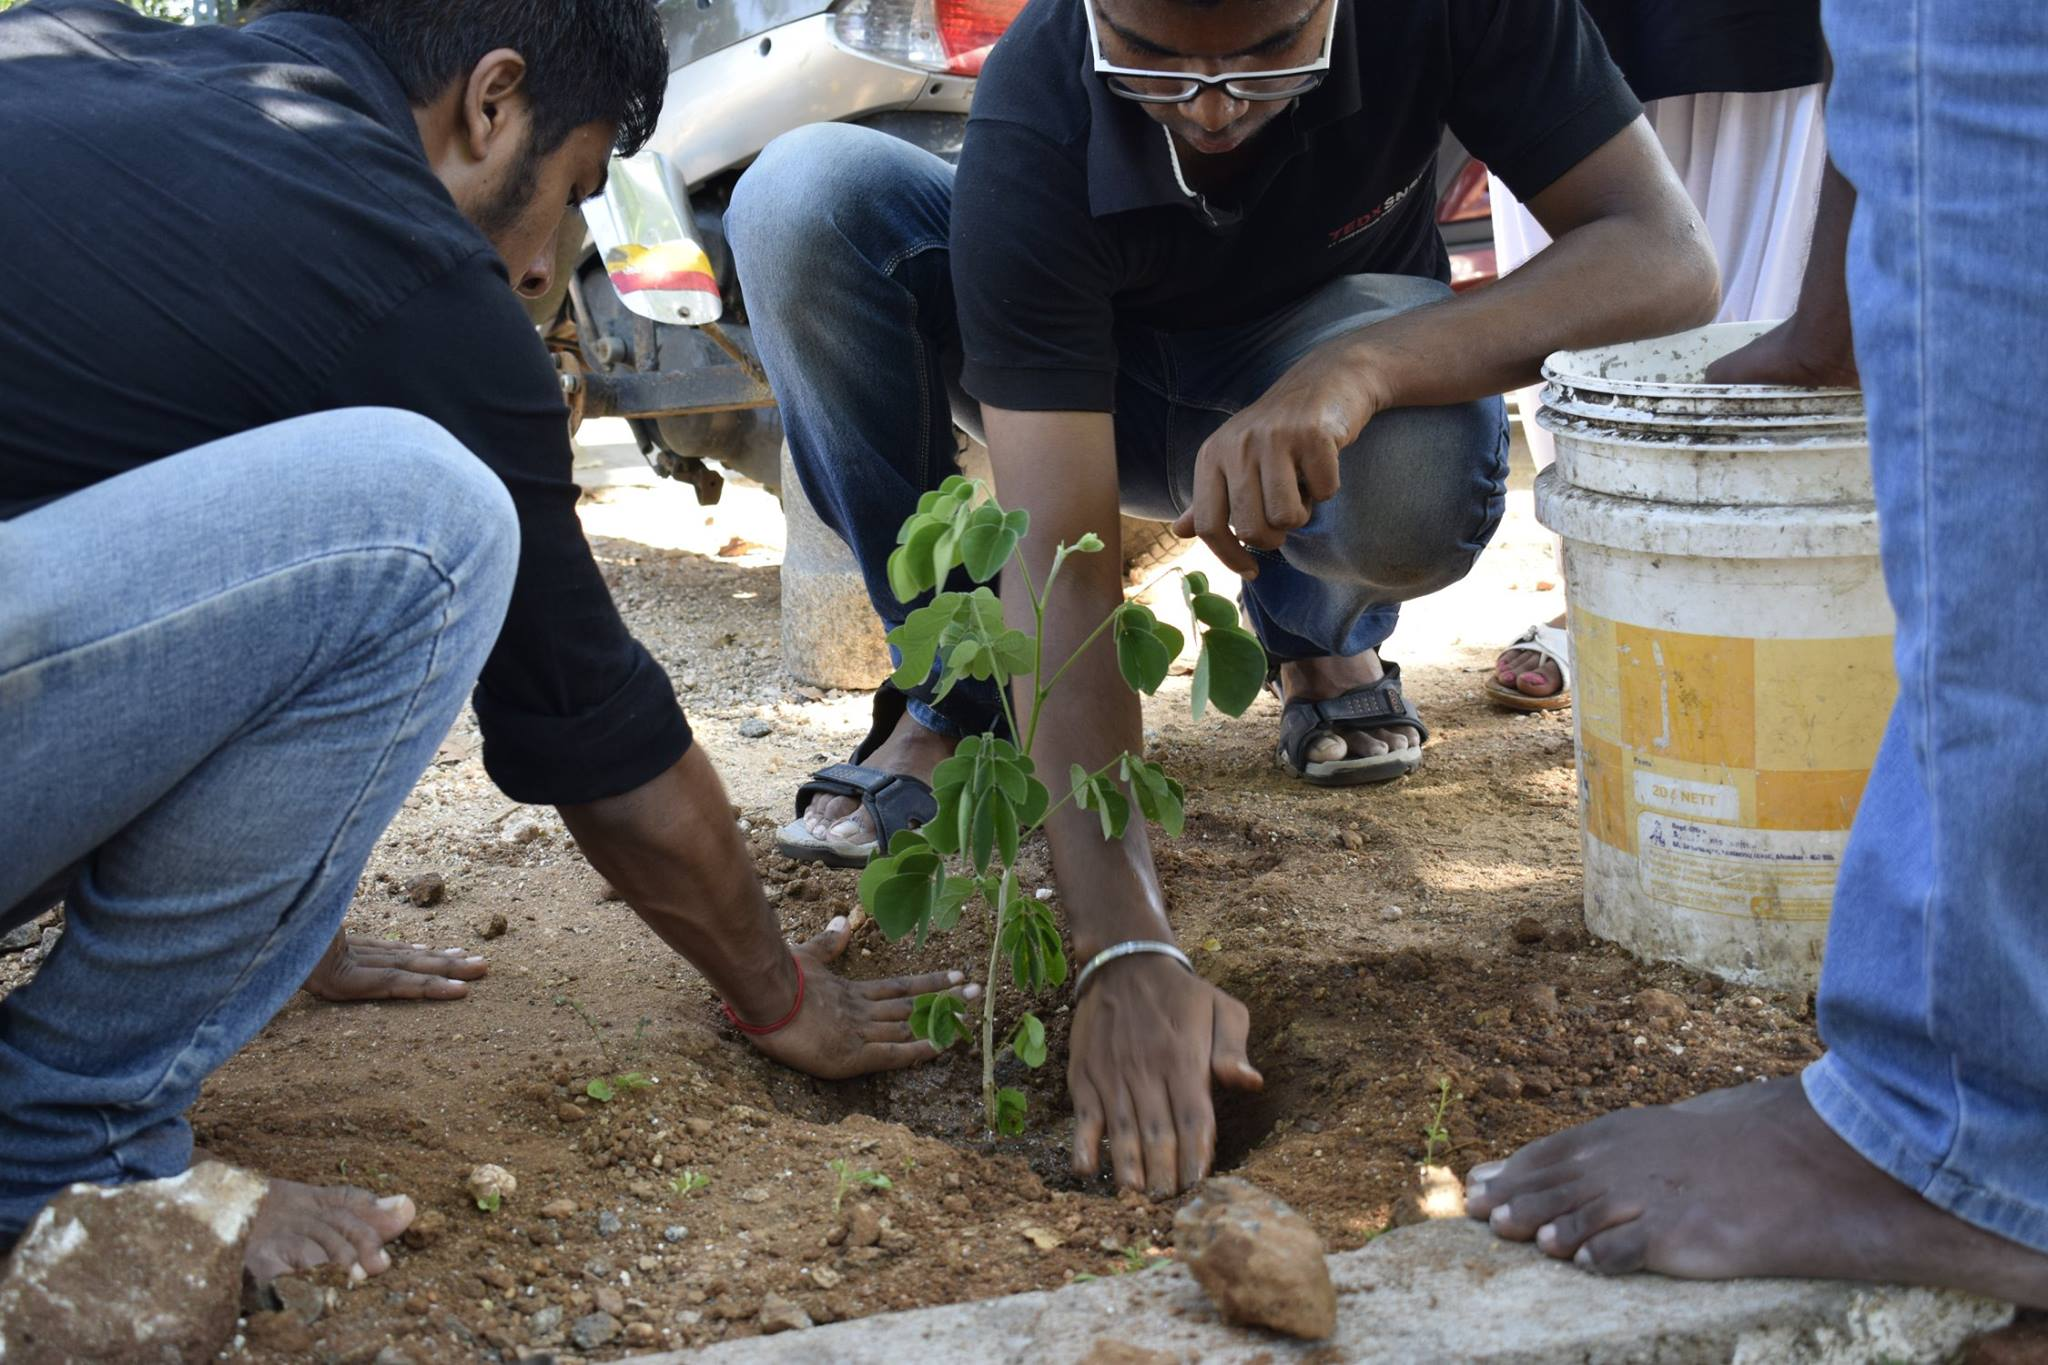 Two men pat at the earth around a newly planted sapling